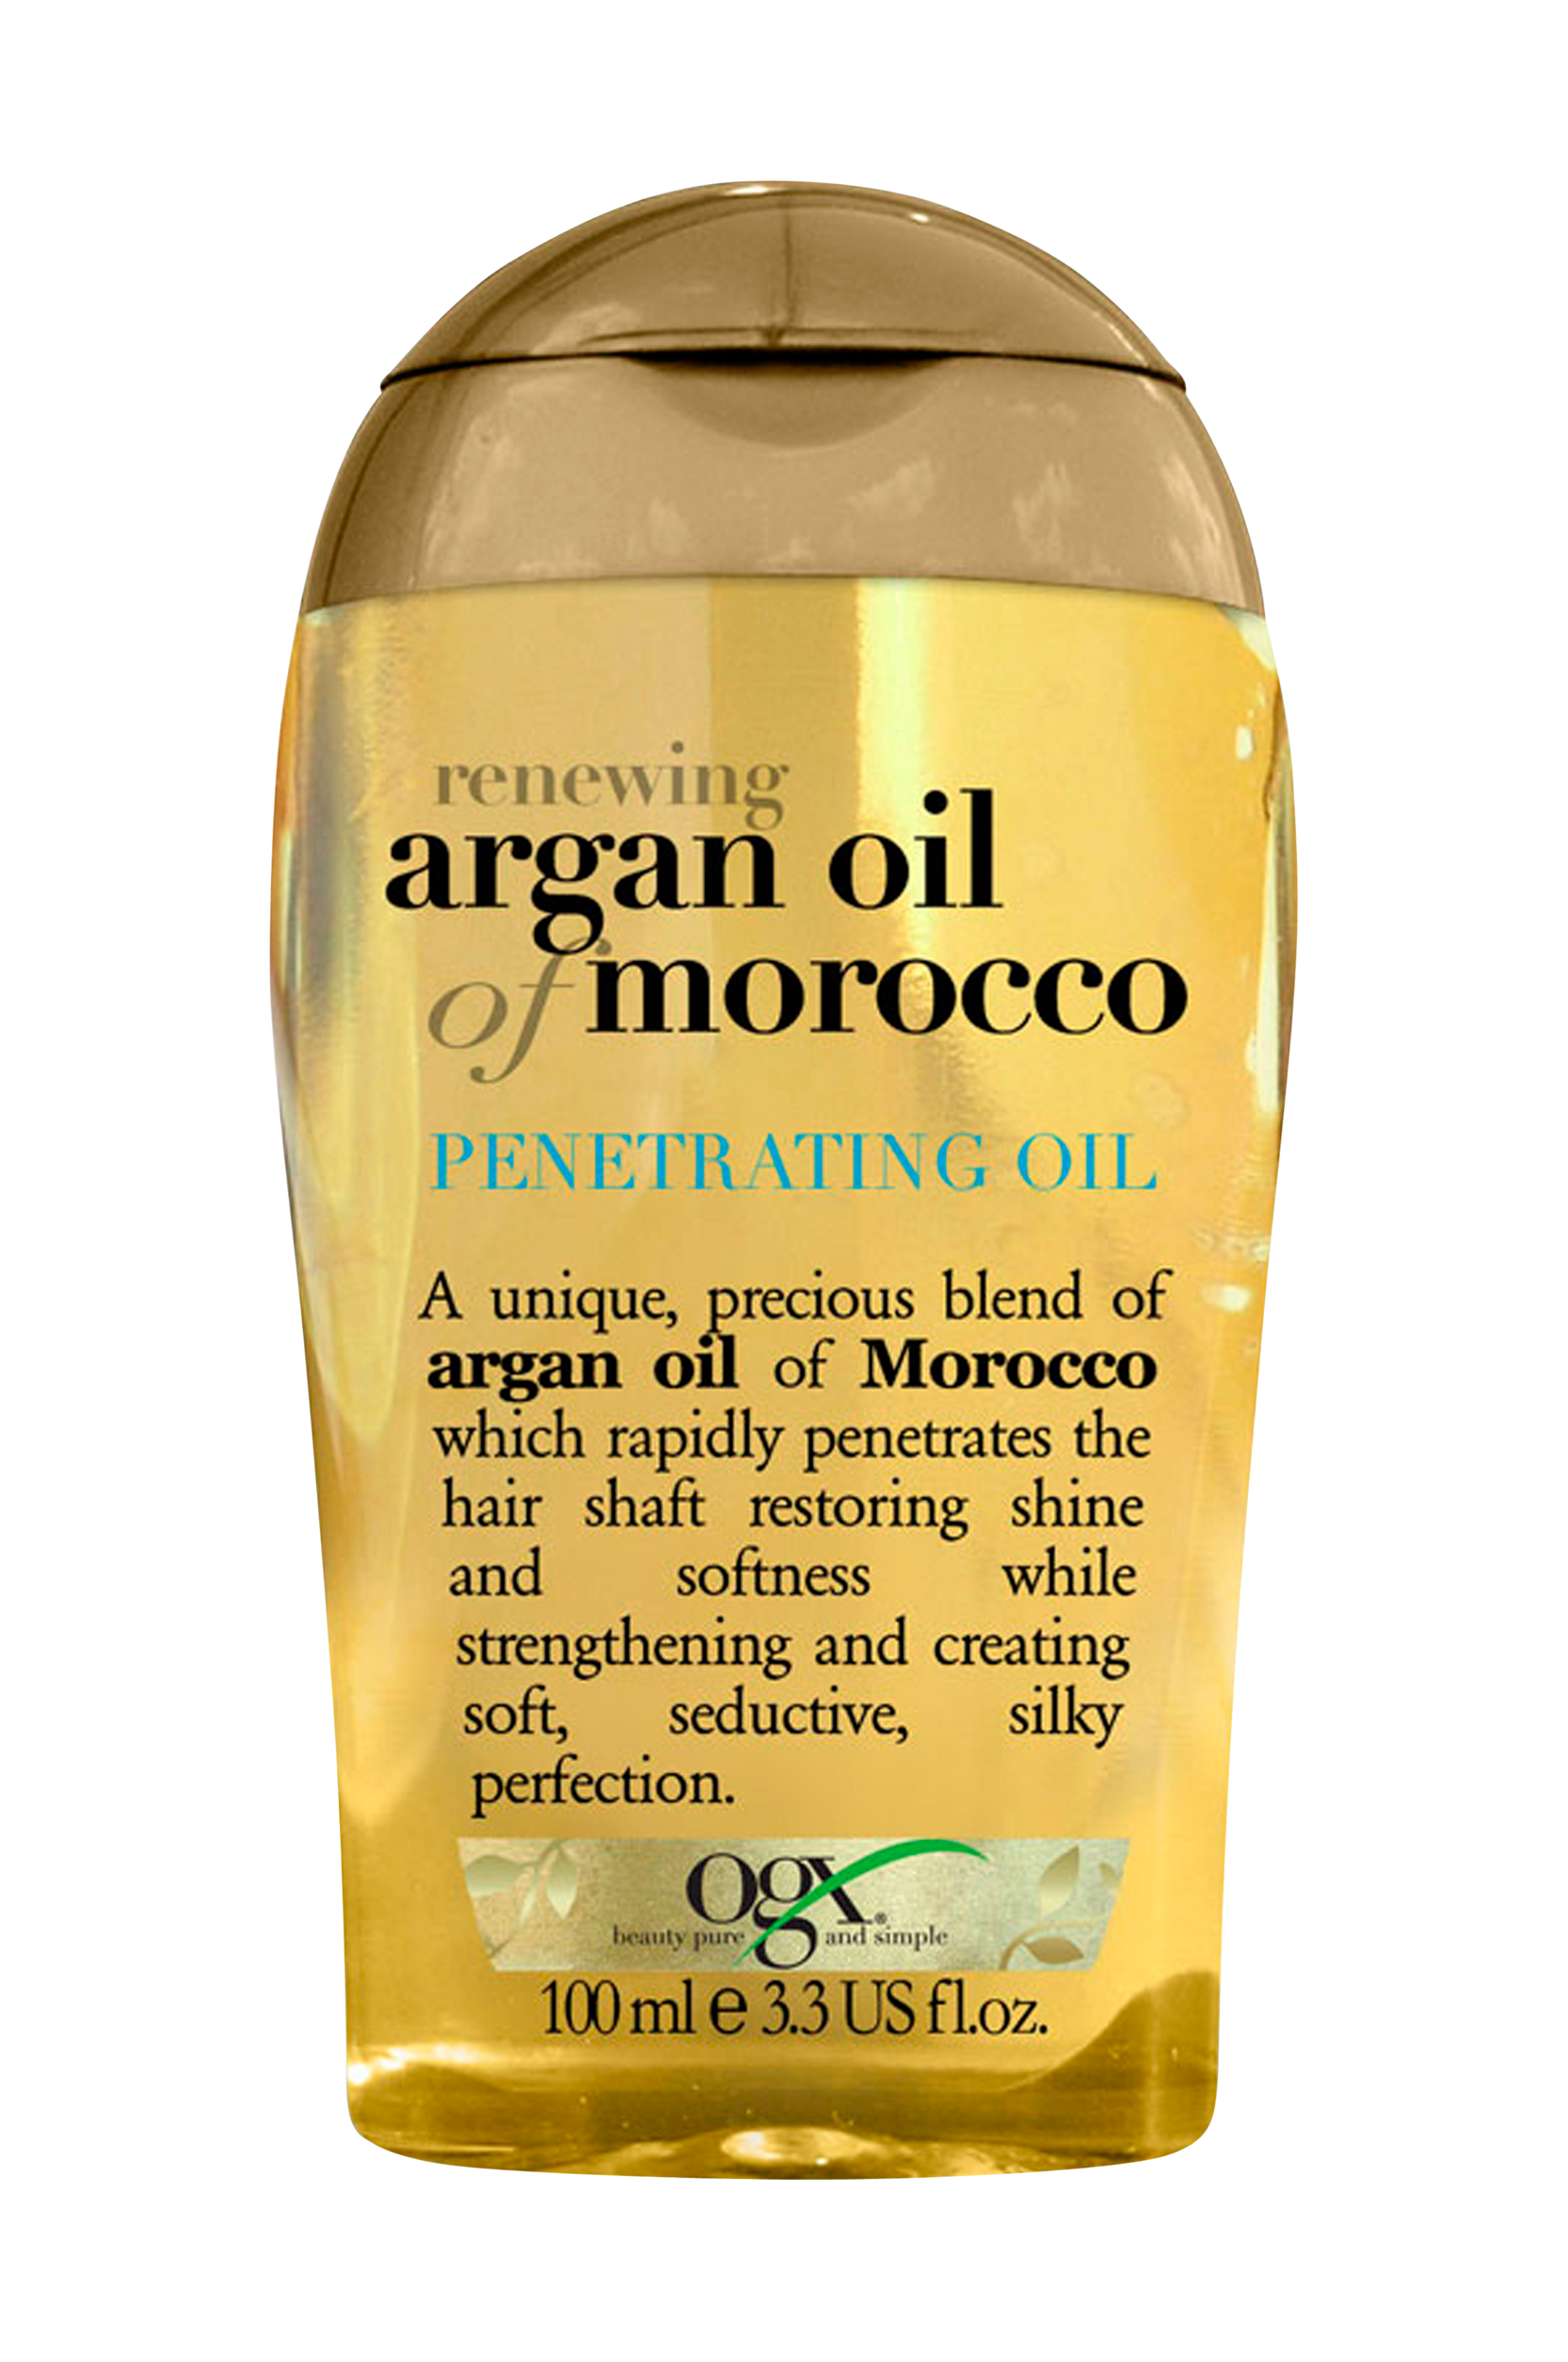 Argan Oil Of Morocco Penetrating Oil, 100 ml